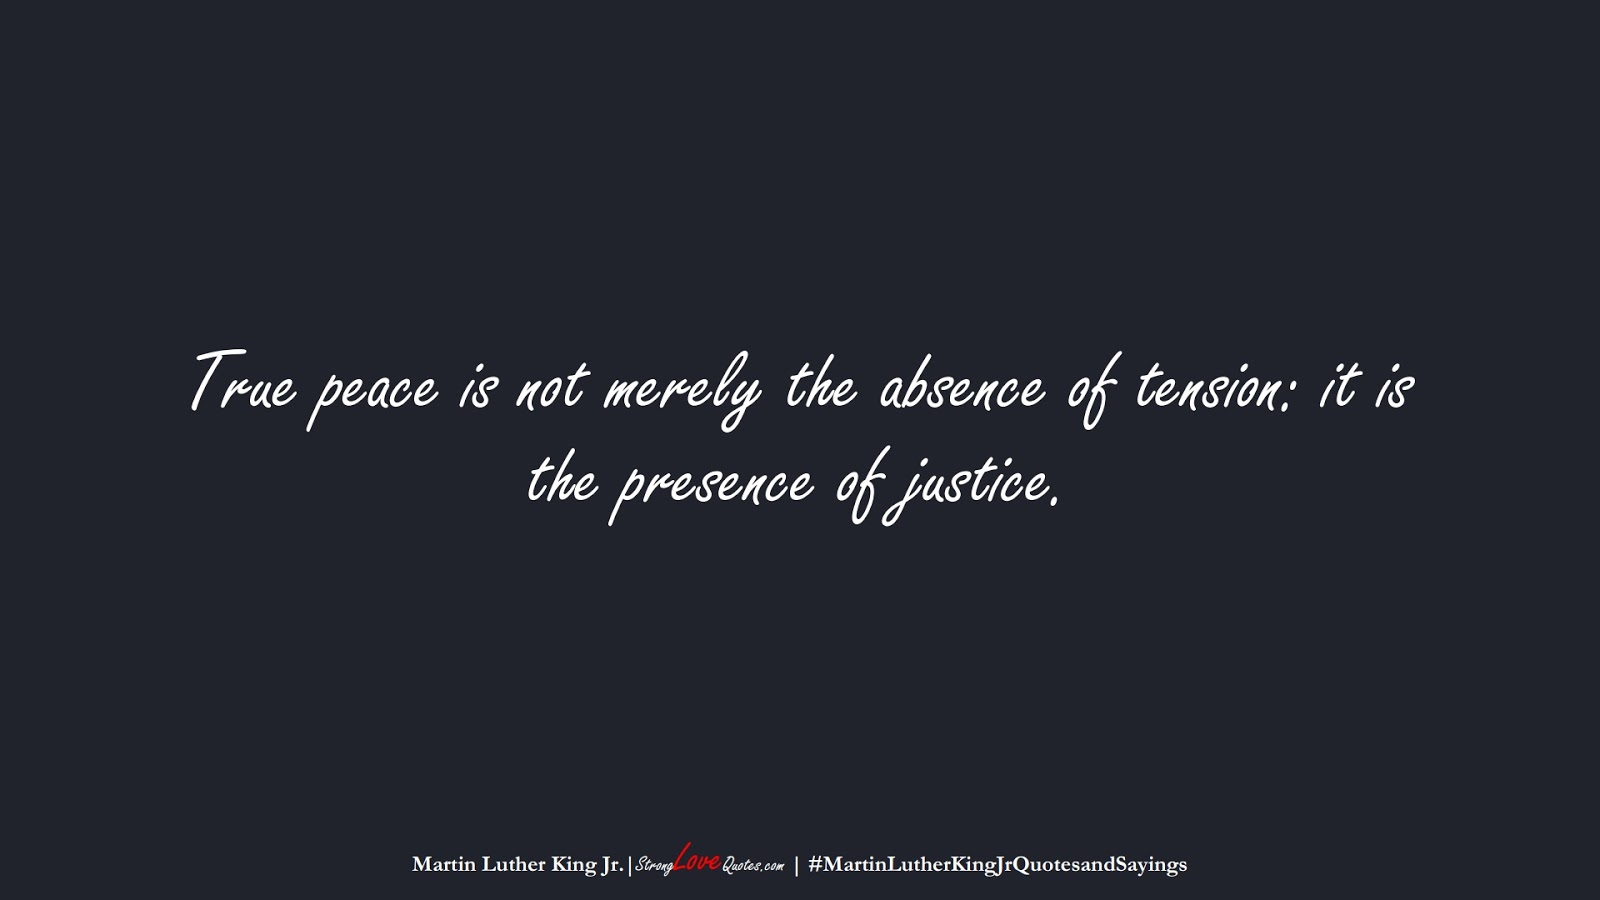 True peace is not merely the absence of tension: it is the presence of justice. (Martin Luther King Jr.);  #MartinLutherKingJrQuotesandSayings